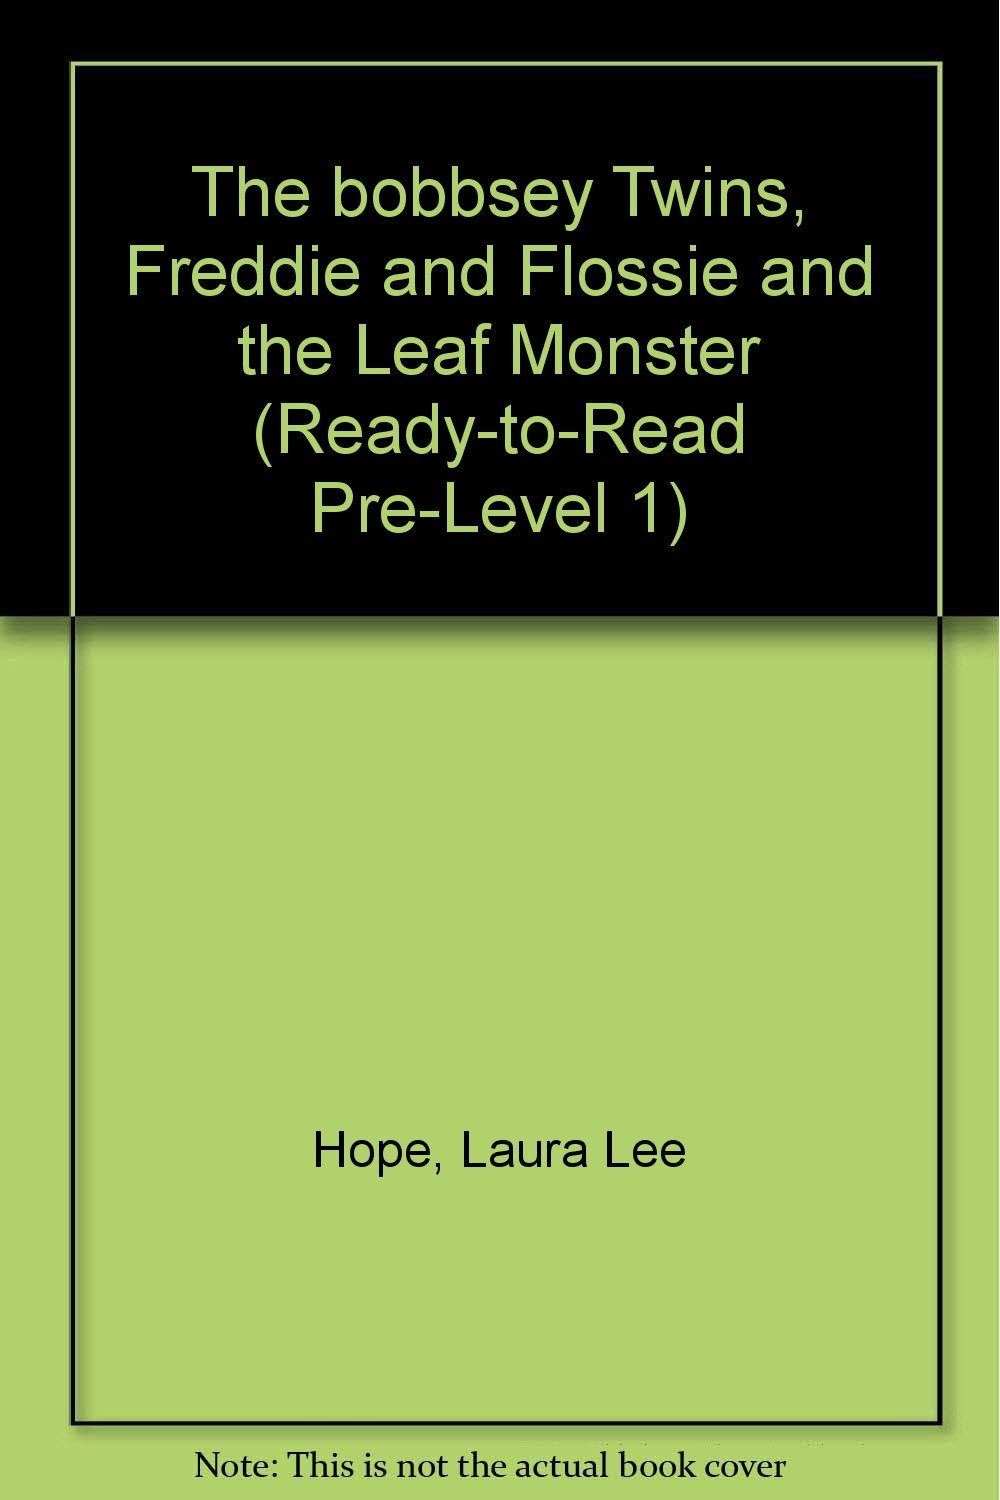 The bobbsey Twins, Freddie and Flossie and the Leaf Monster (Ready-to-read Pre-level 1) PDF